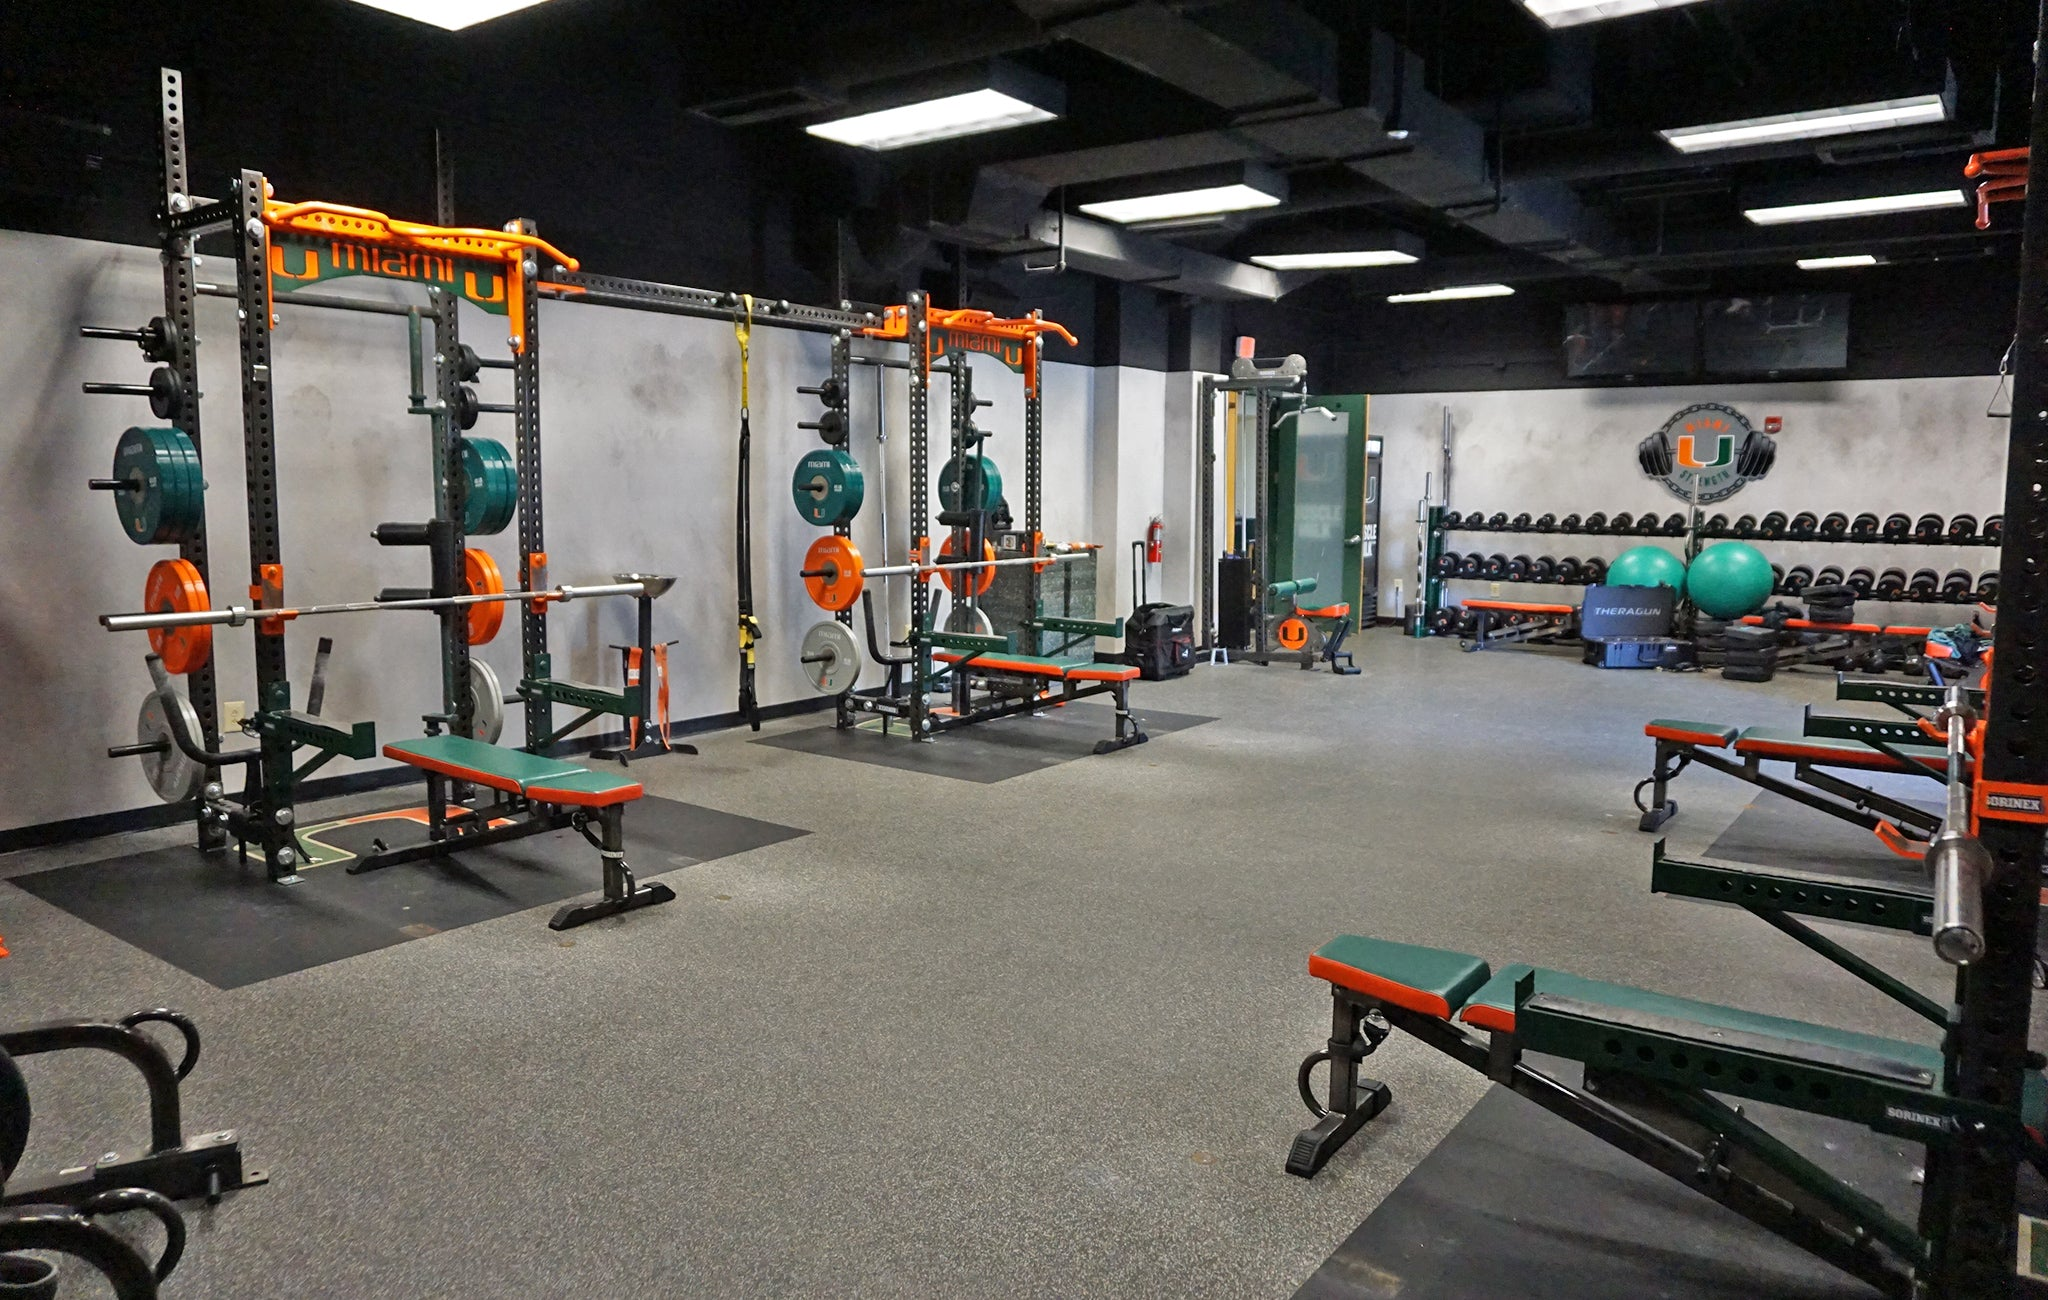 University of Miami basketball strength and conditioning